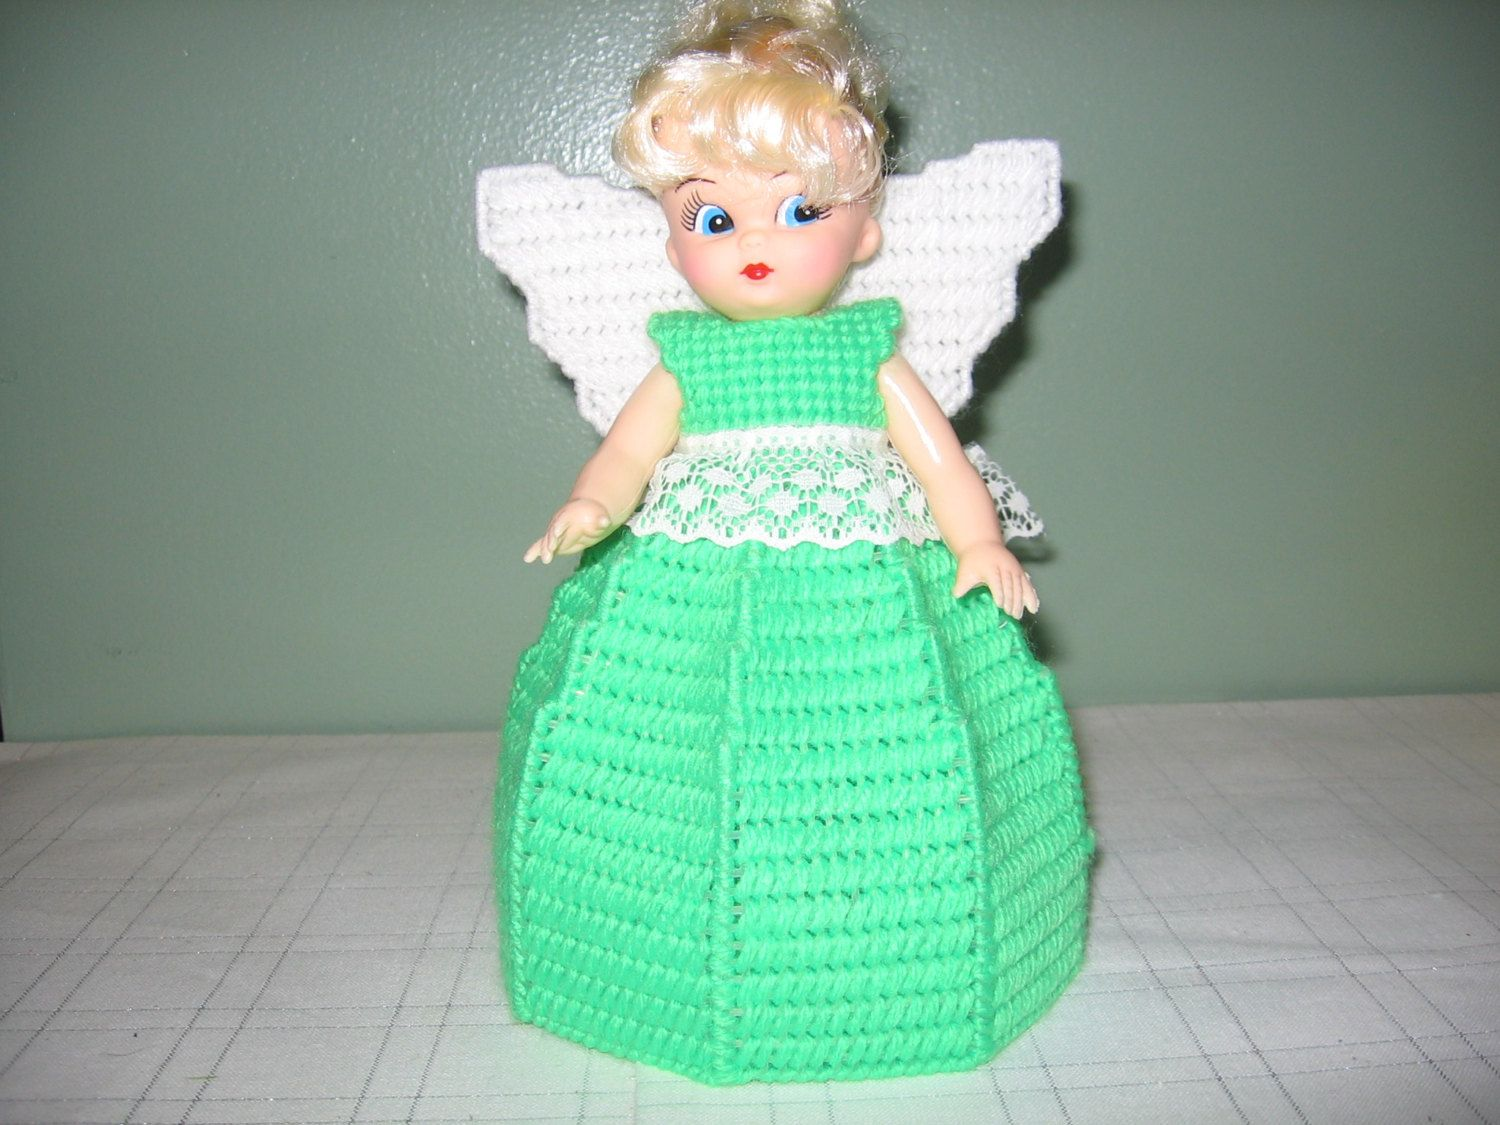 Light Green Angel Air Freshner or Angel Tree Topper Collectible Doll by CreationsbyAMJ on Etsy #airfreshnerdolls